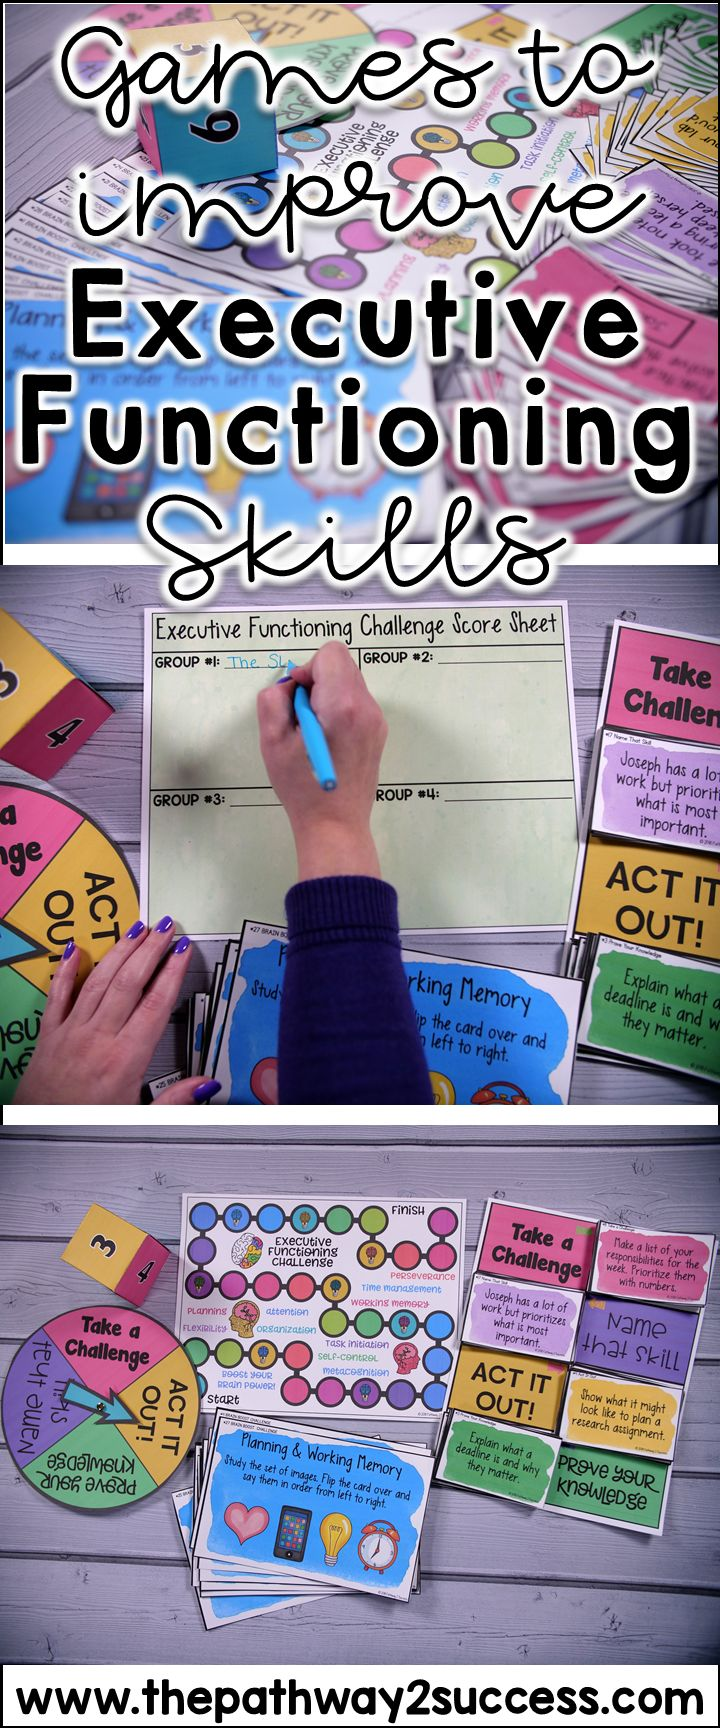 Games and activities that teach critical executive functioning skills, including self-control, attention, organization, flexibility, working memory, planning, and more!